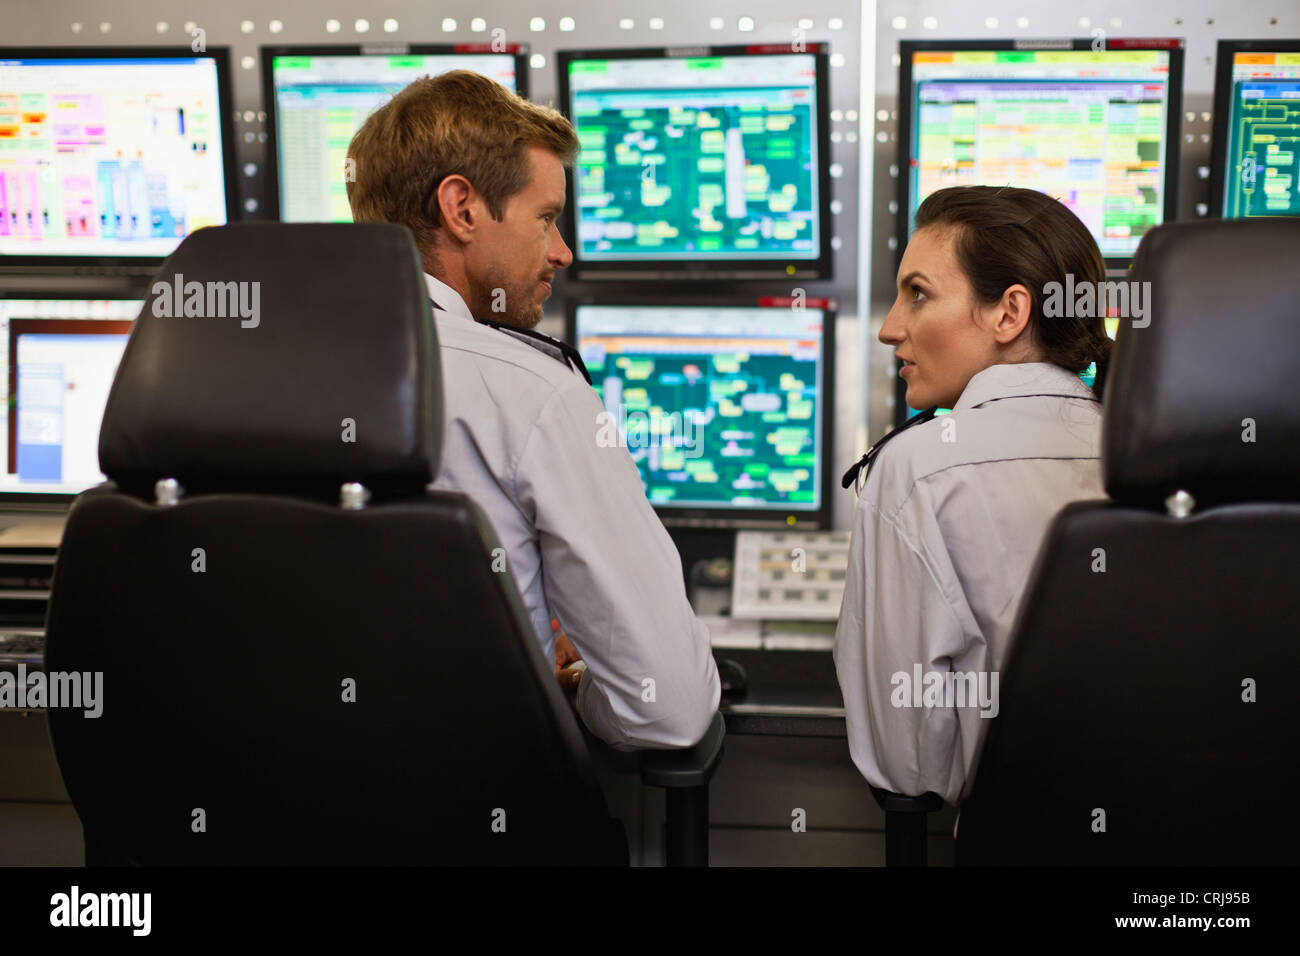 People working in security control room - Stock Image